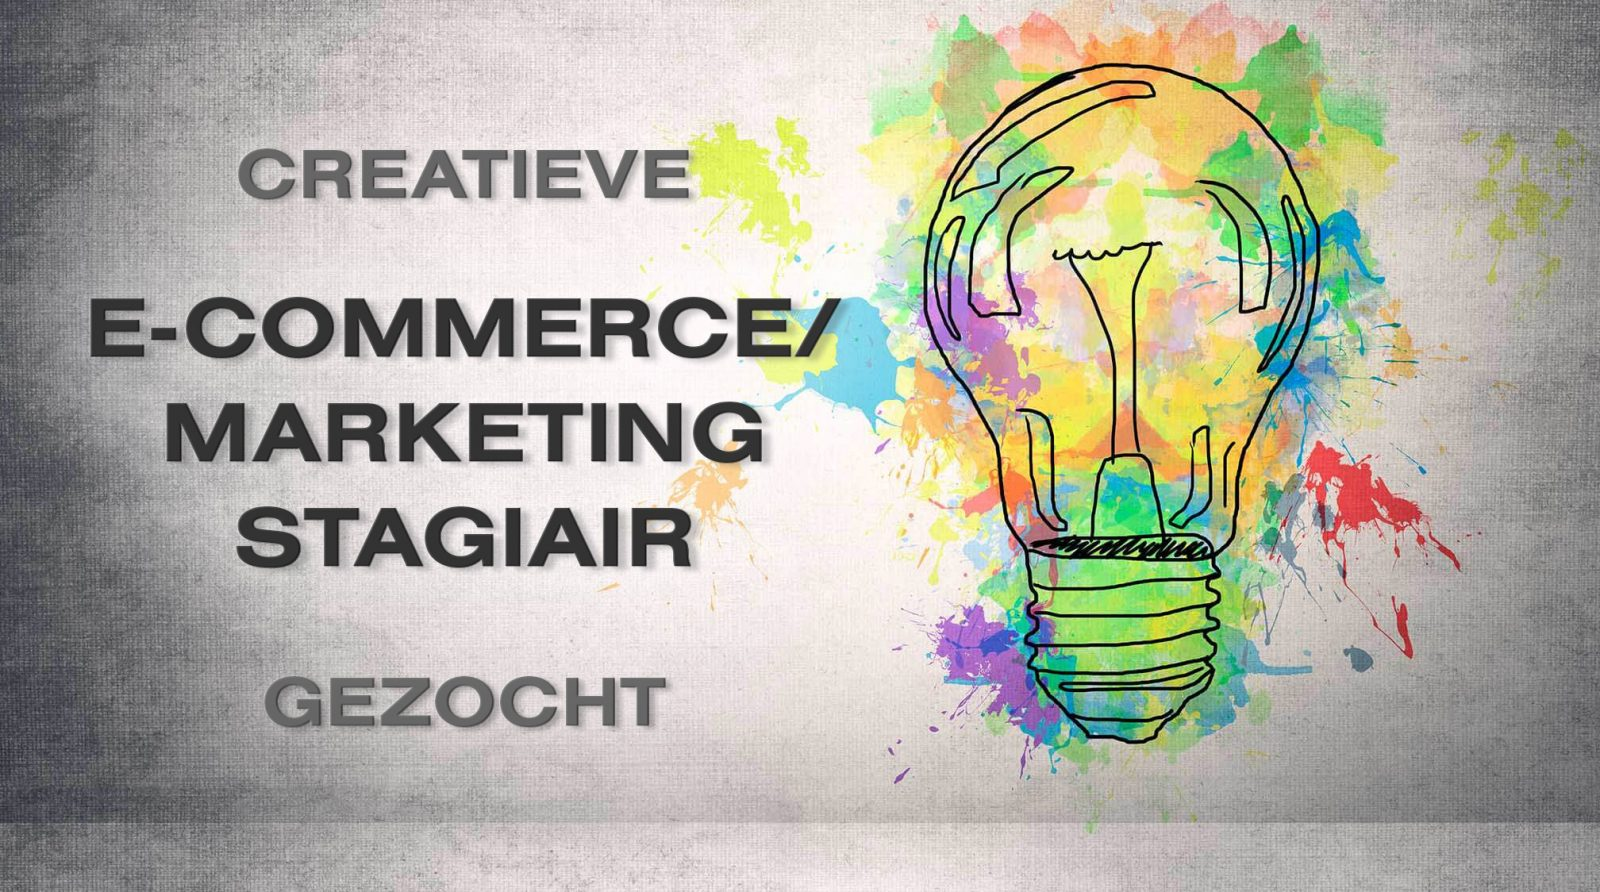 E-commerce / Marketing Stagiair gezocht